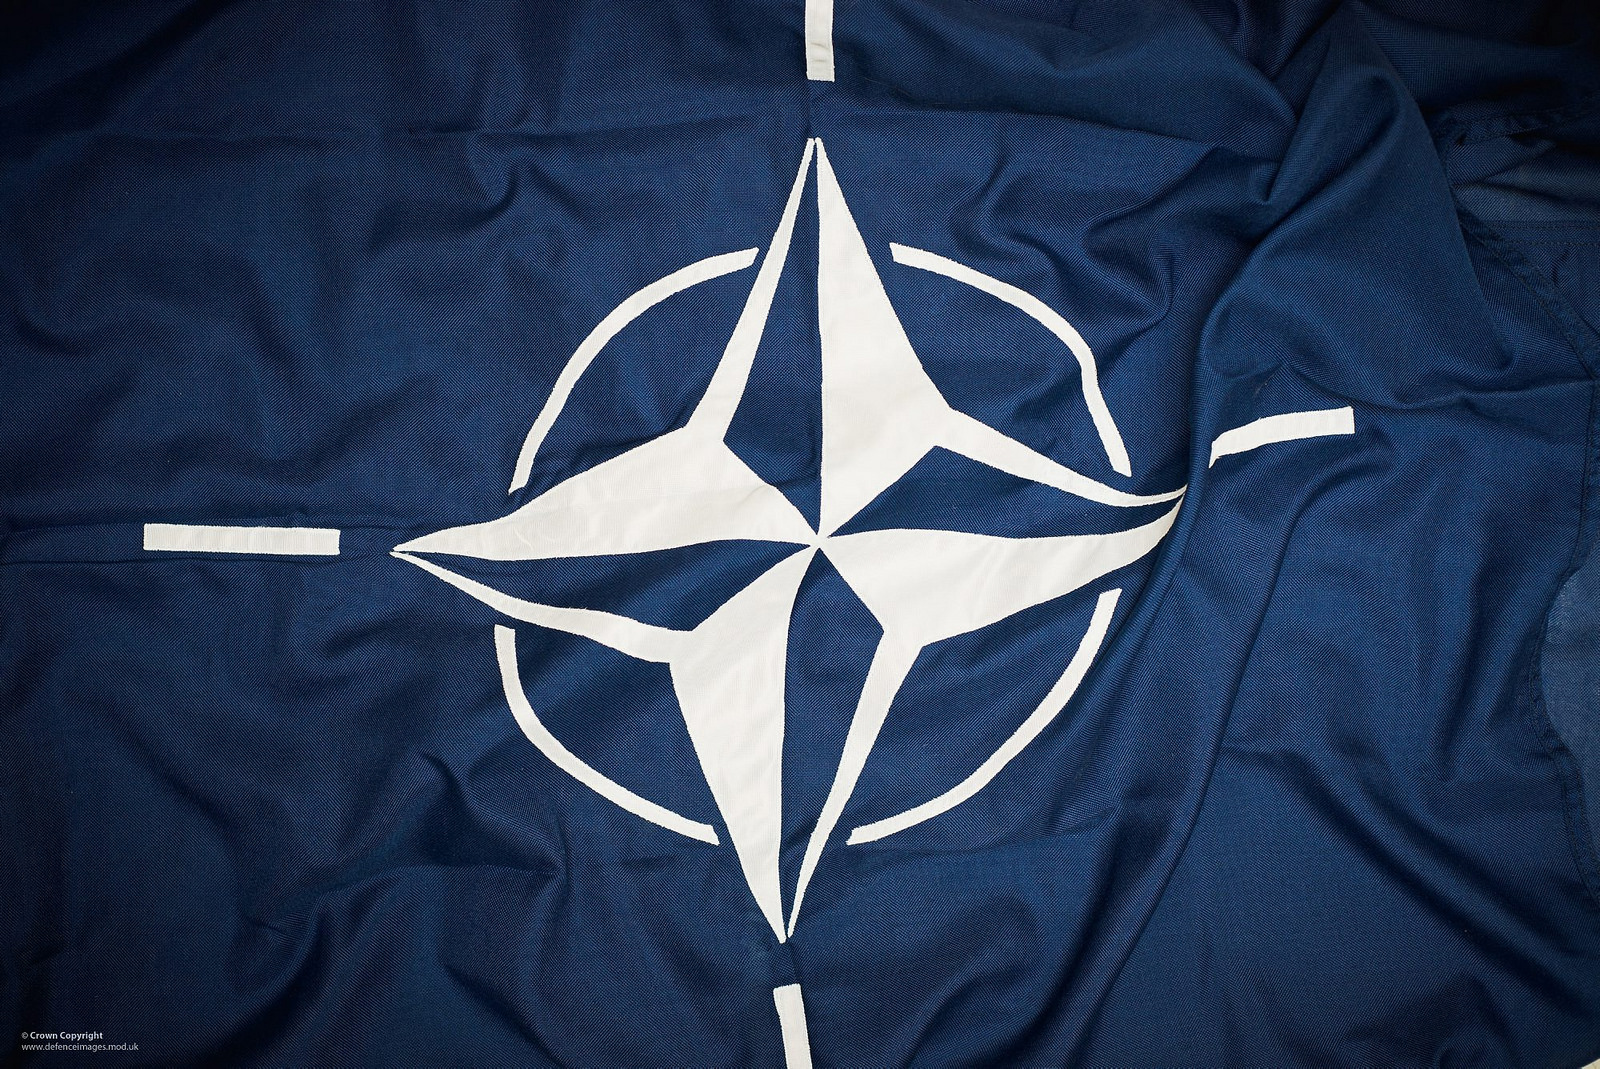 Ratification of Montenegro's NATO Accession Protocol is now completed